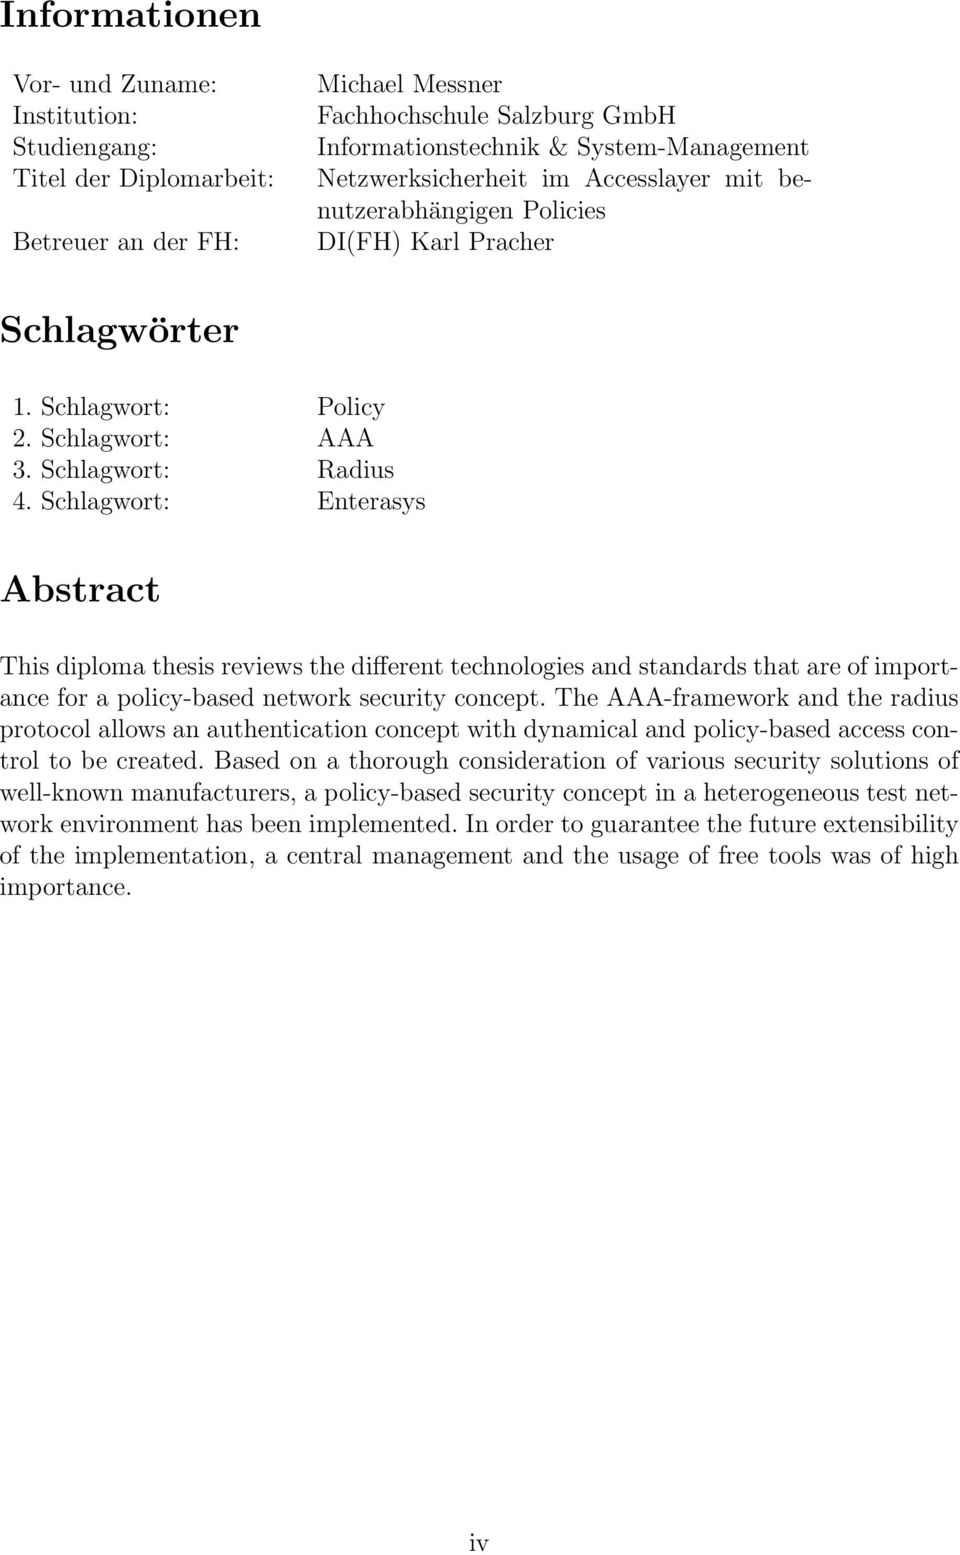 Schlagwort: Enterasys Abstract This diploma thesis reviews the different technologies and standards that are of importance for a policy-based network security concept.